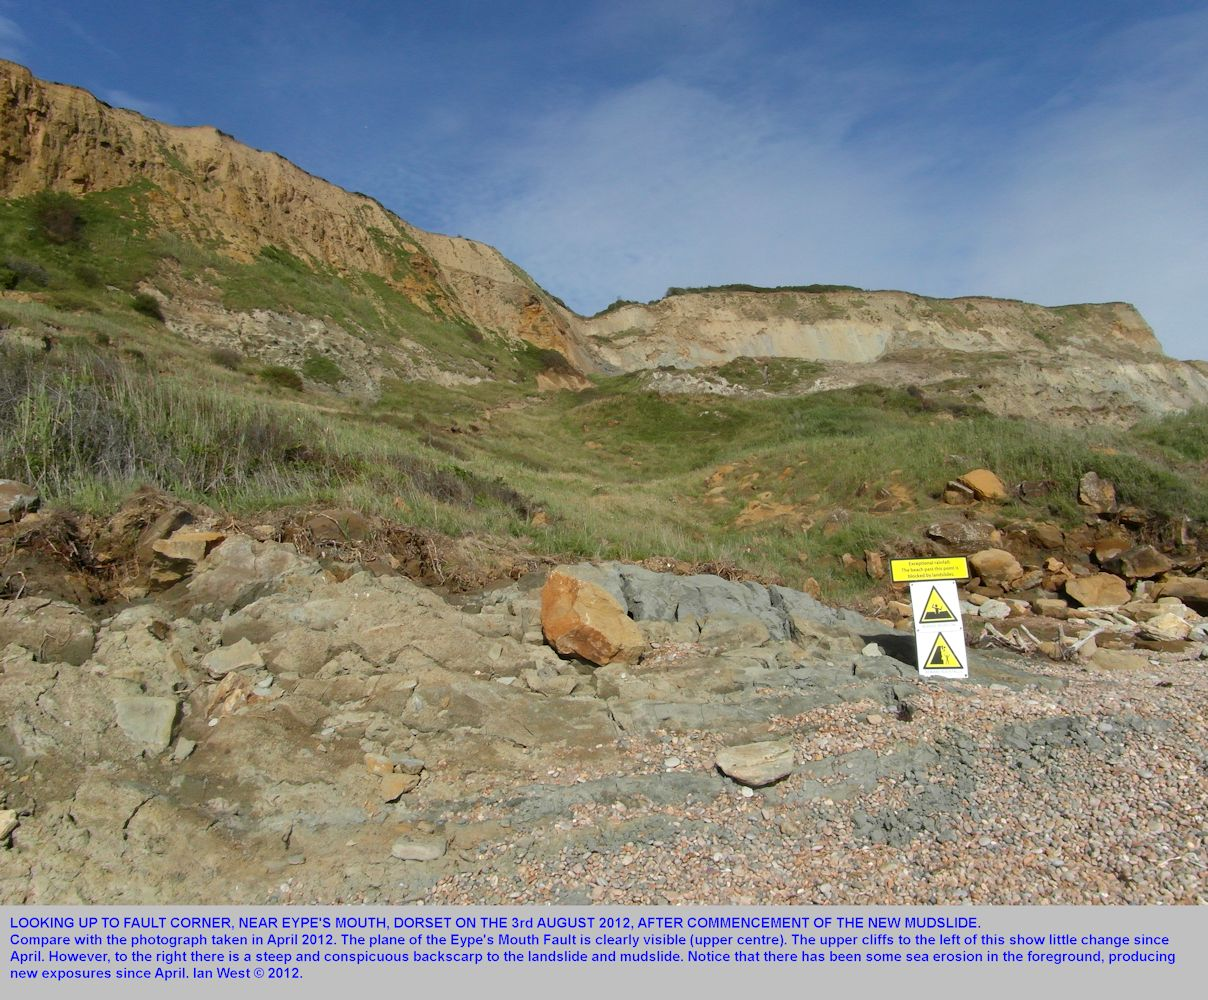 Fault Corner, Eype's Mouth, near Bridport, Dorset, on the 3rd August 2012 showing the new mudslide and renewed coast erosion